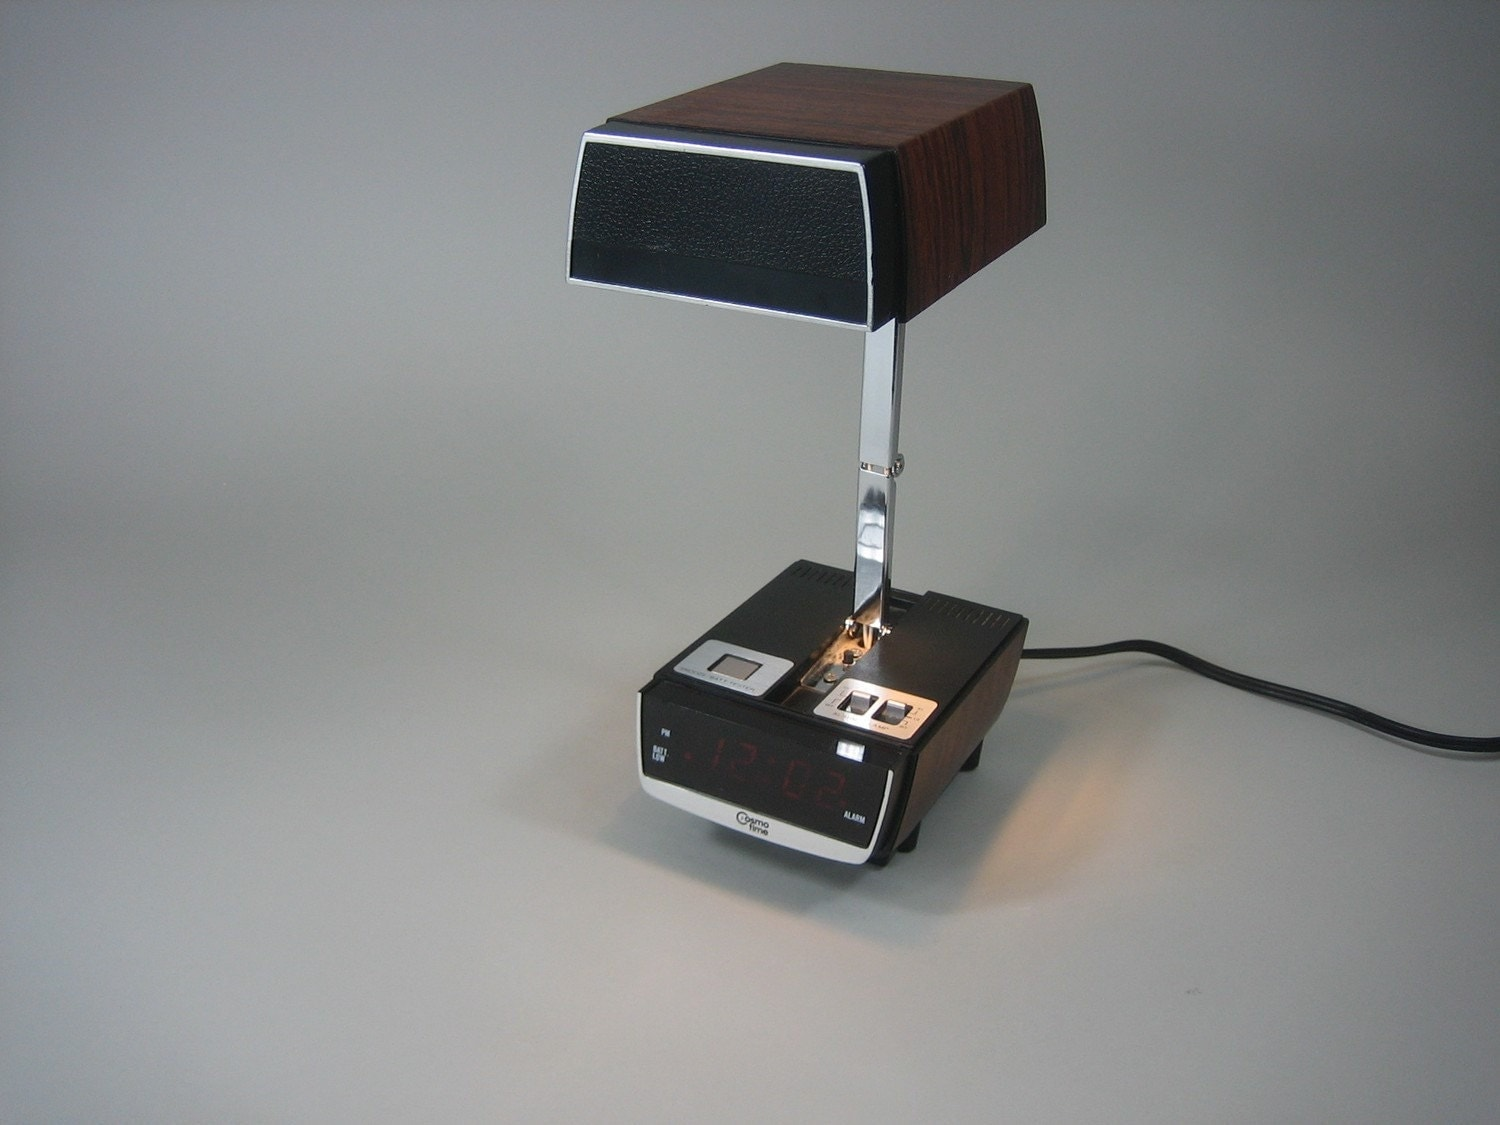 Cosmo Time Folding Lamp and Alarm Clock by avantgarage on Etsy from etsy.com